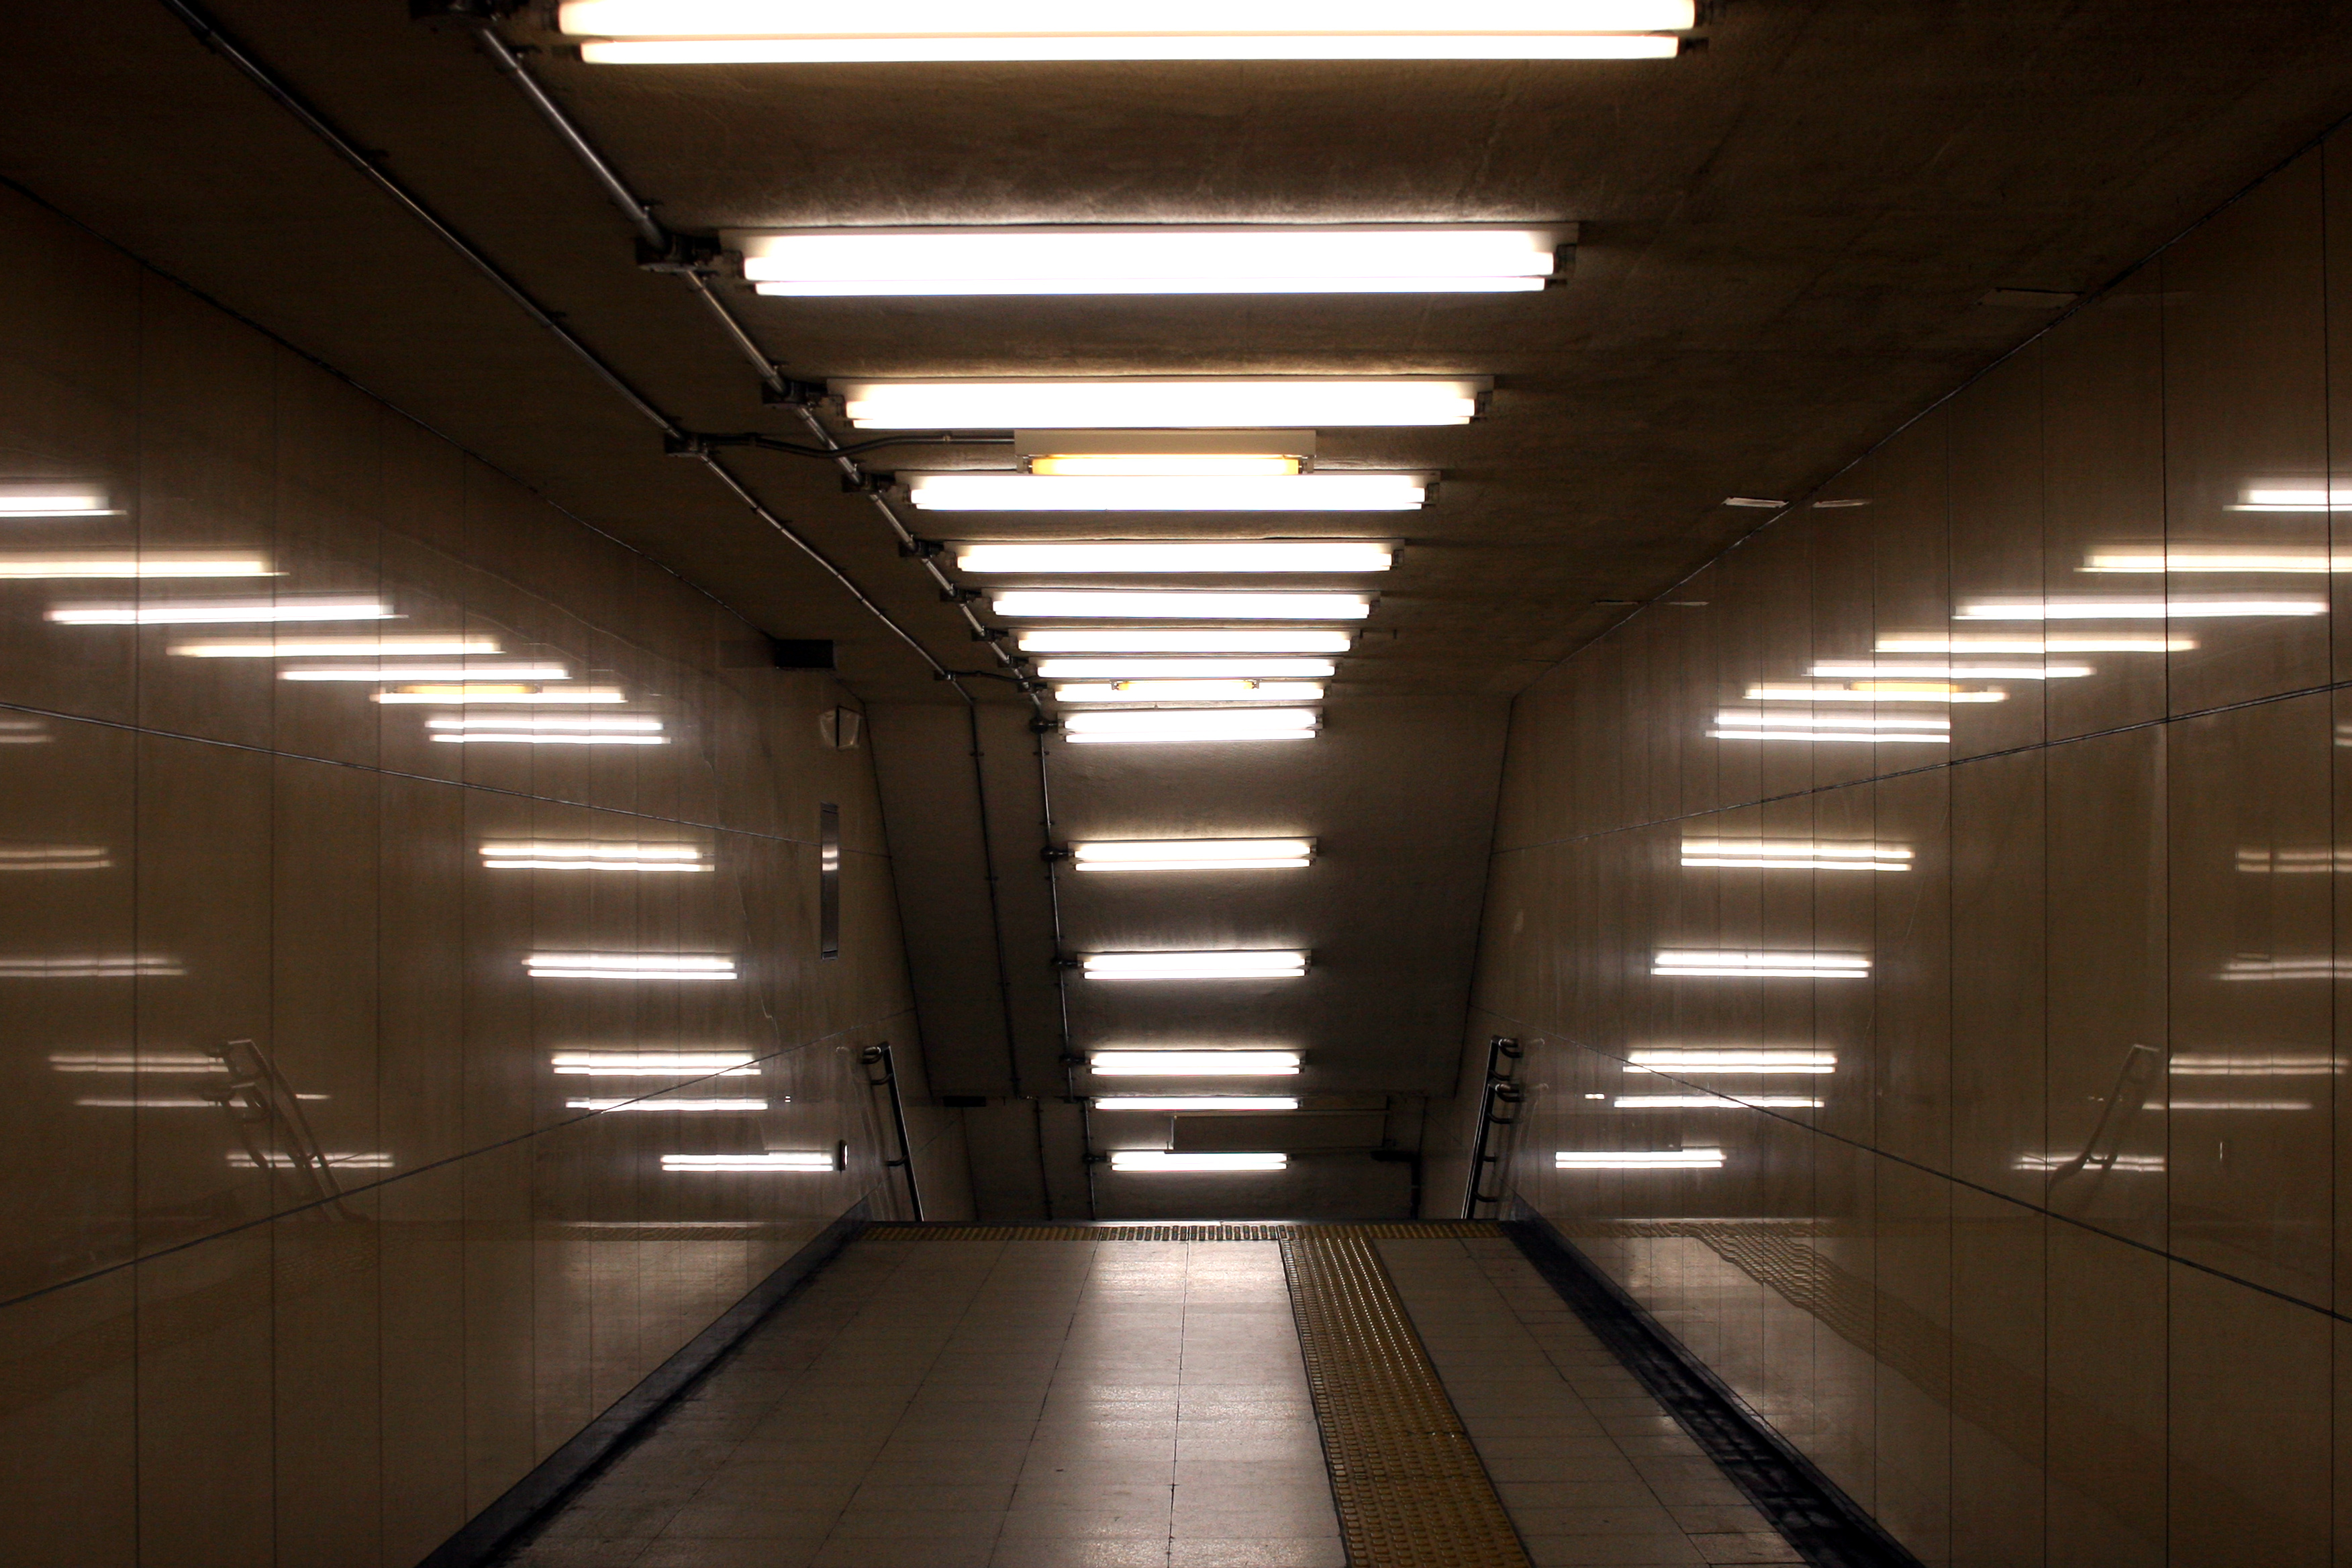 What are fluorescent lamps?